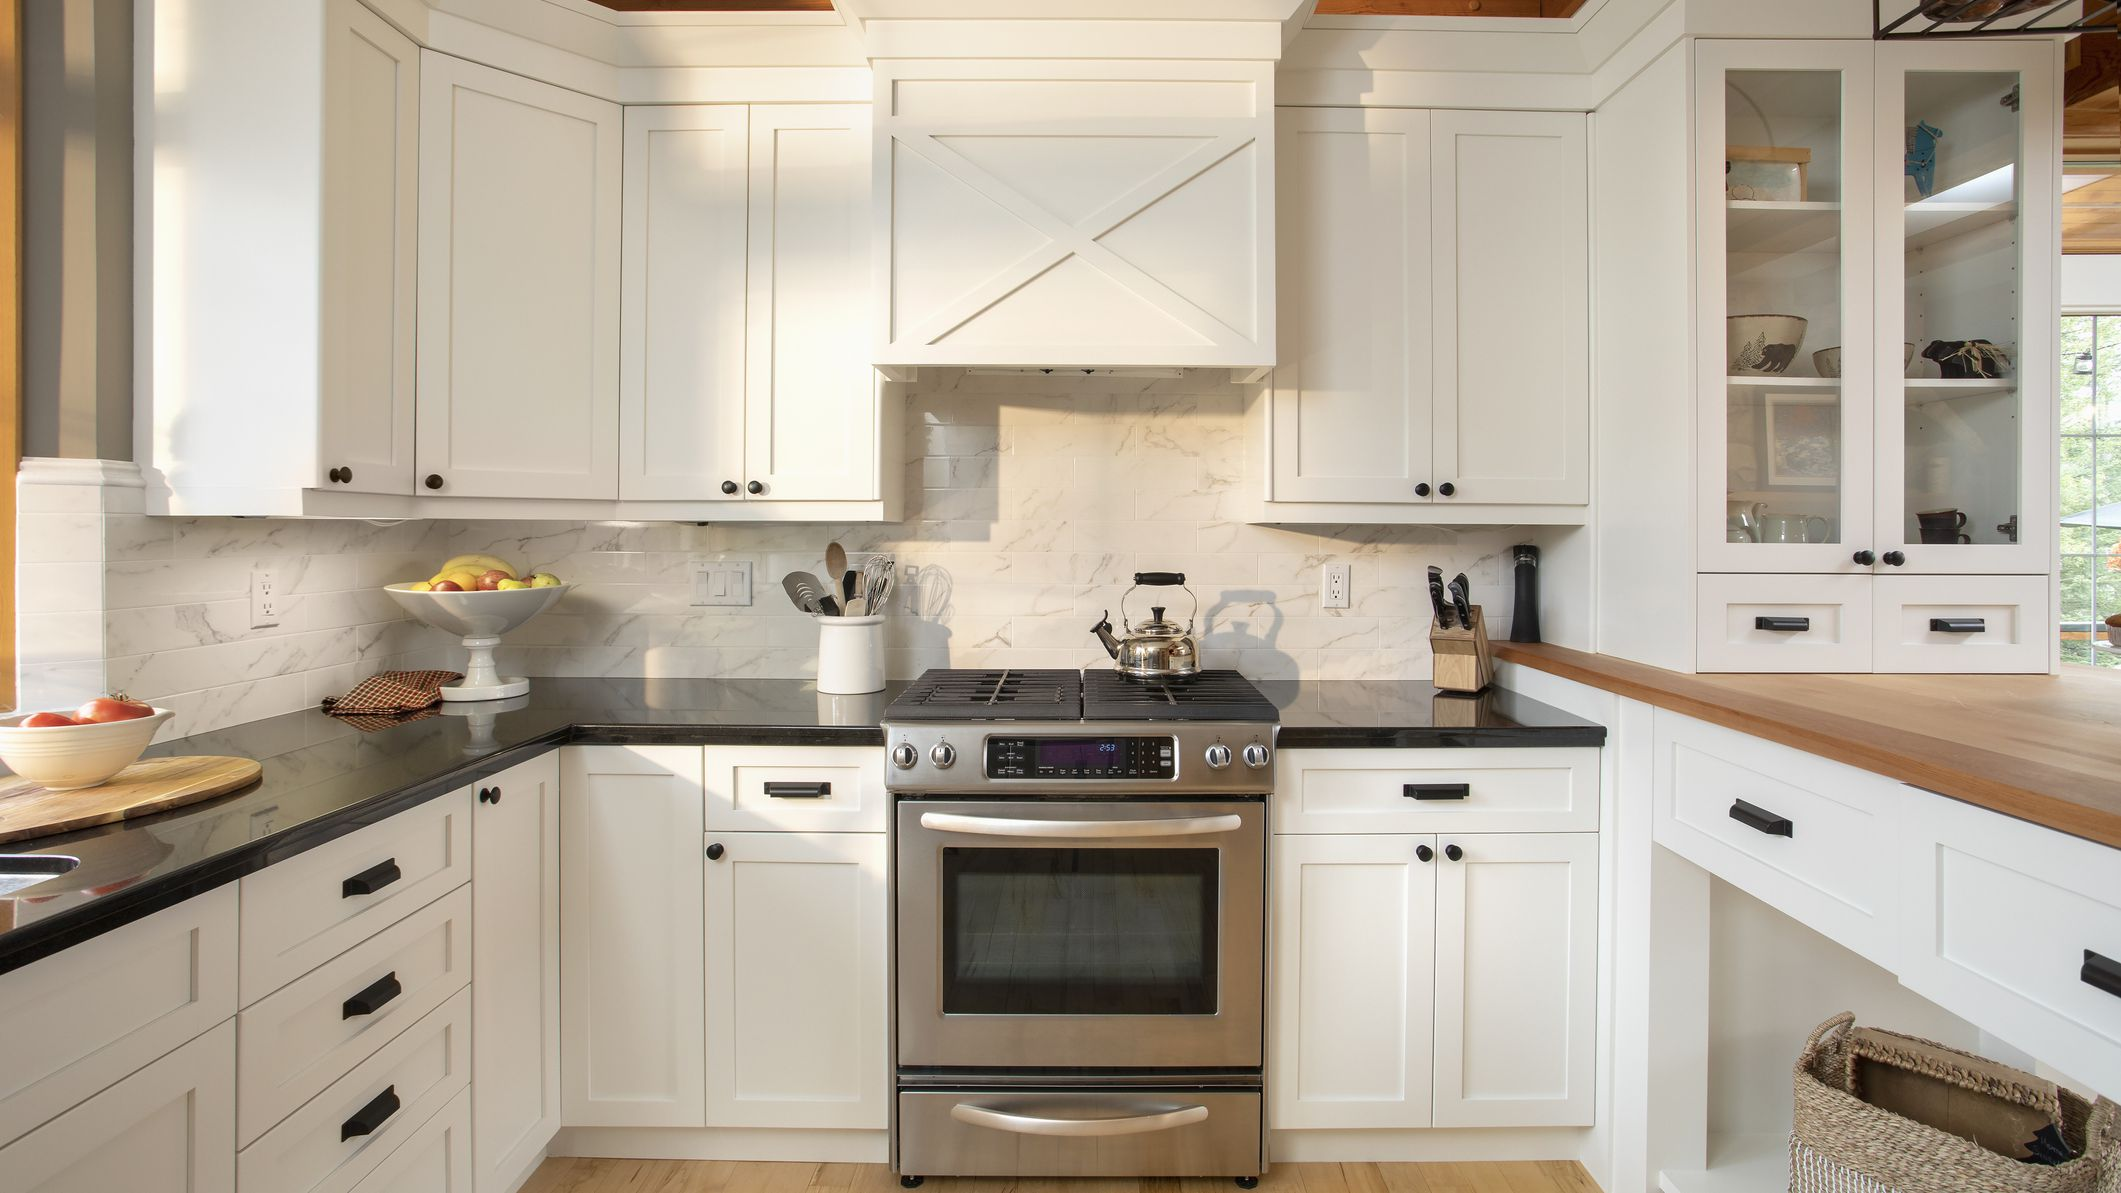 How To Buy Used Kitchen Cabinets And Save Money